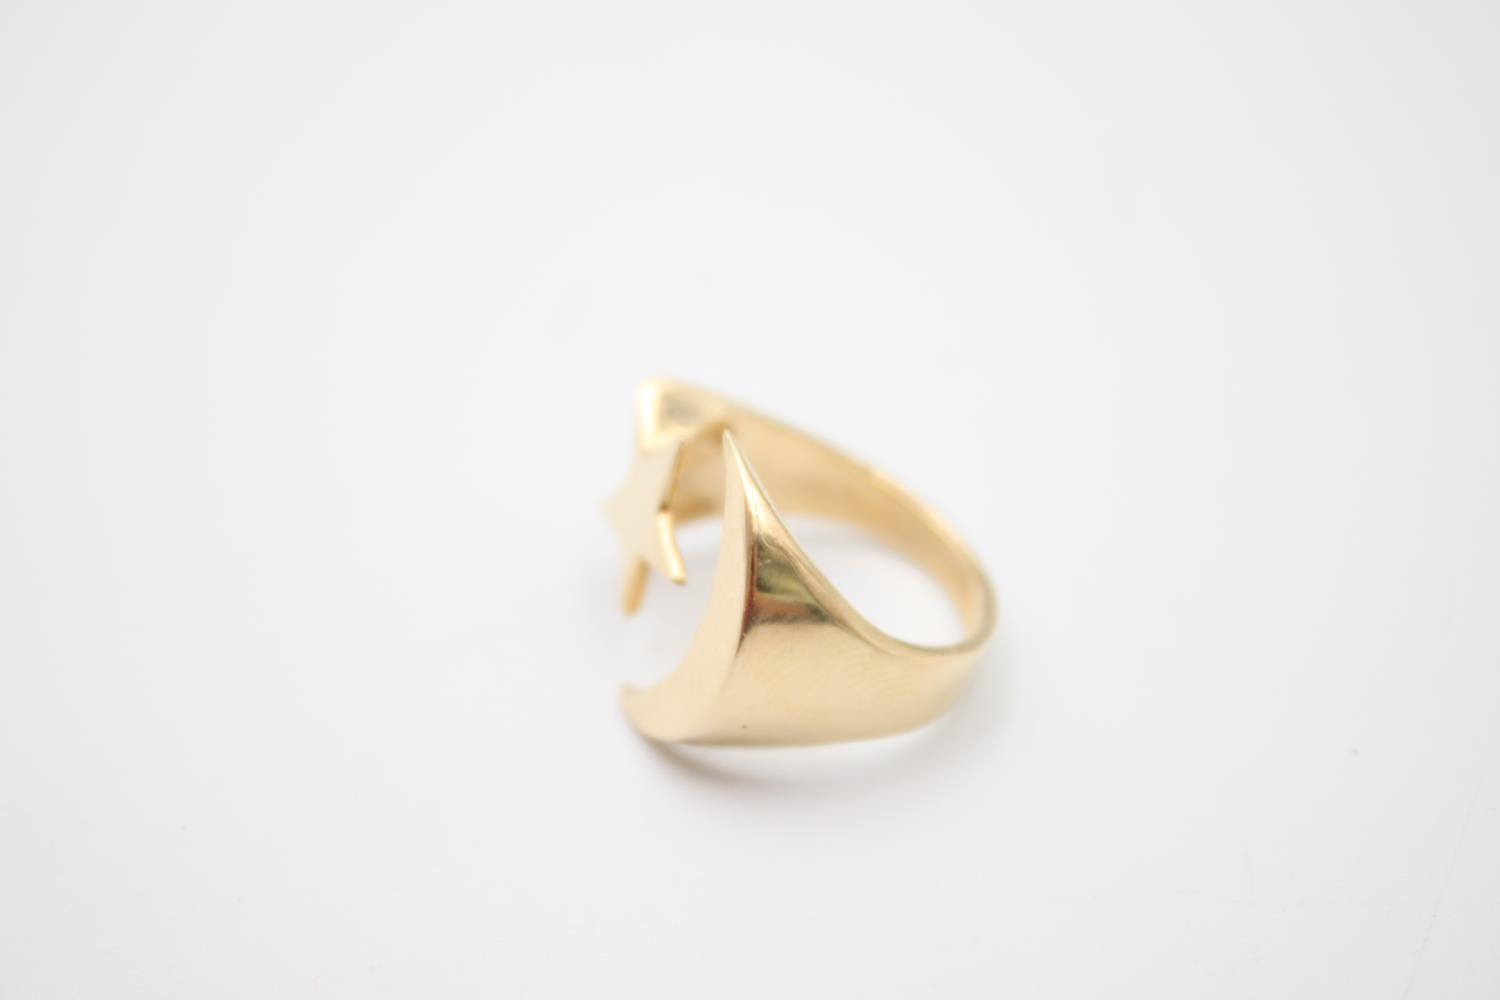 14ct gold moon and star signet style ring 4.8g Size K - Image 2 of 5